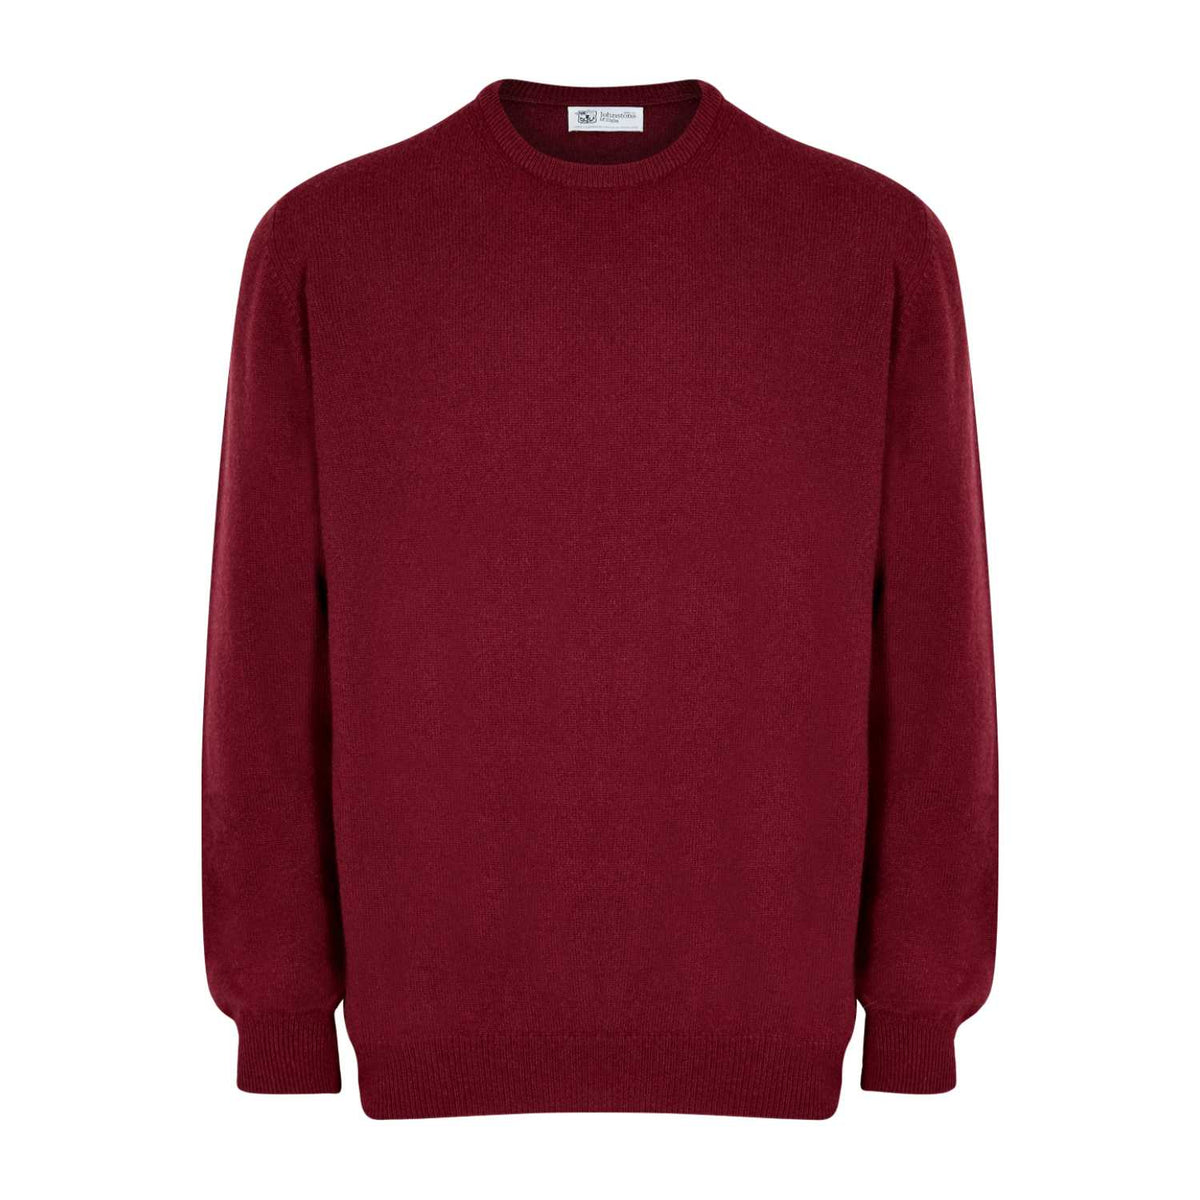 Johnsons Cashmere | Mens Cabernet Wine Cashmere Sweater | 3 ply Cashmere | shop now at The Cashmere Choice | London